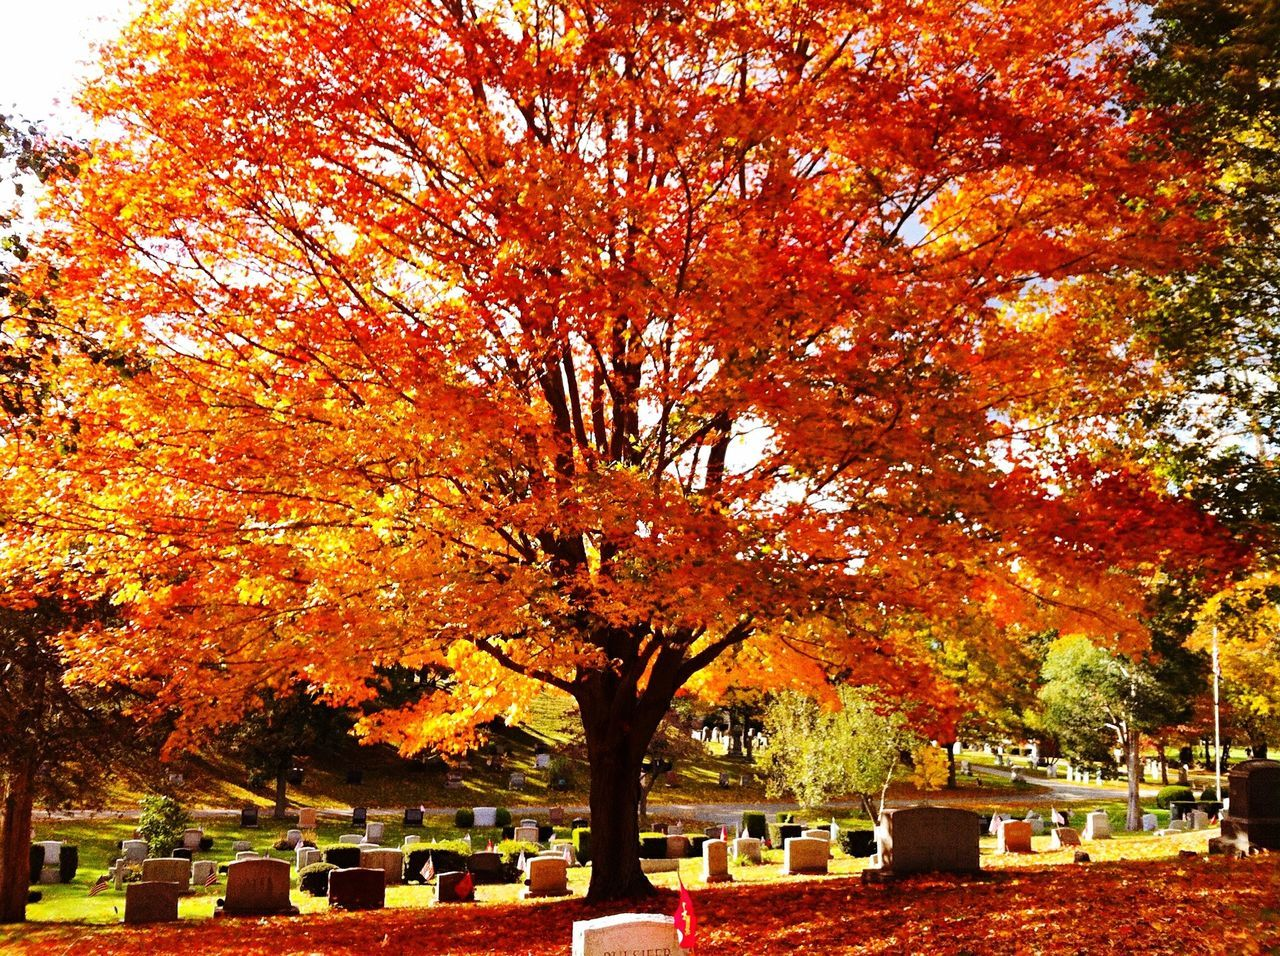 autumn, tree, tombstone, cemetery, change, leaf, graveyard, gravestone, nature, memorial, tranquility, maple tree, outdoors, day, beauty in nature, no people, tranquil scene, branch, cross, maple, sky